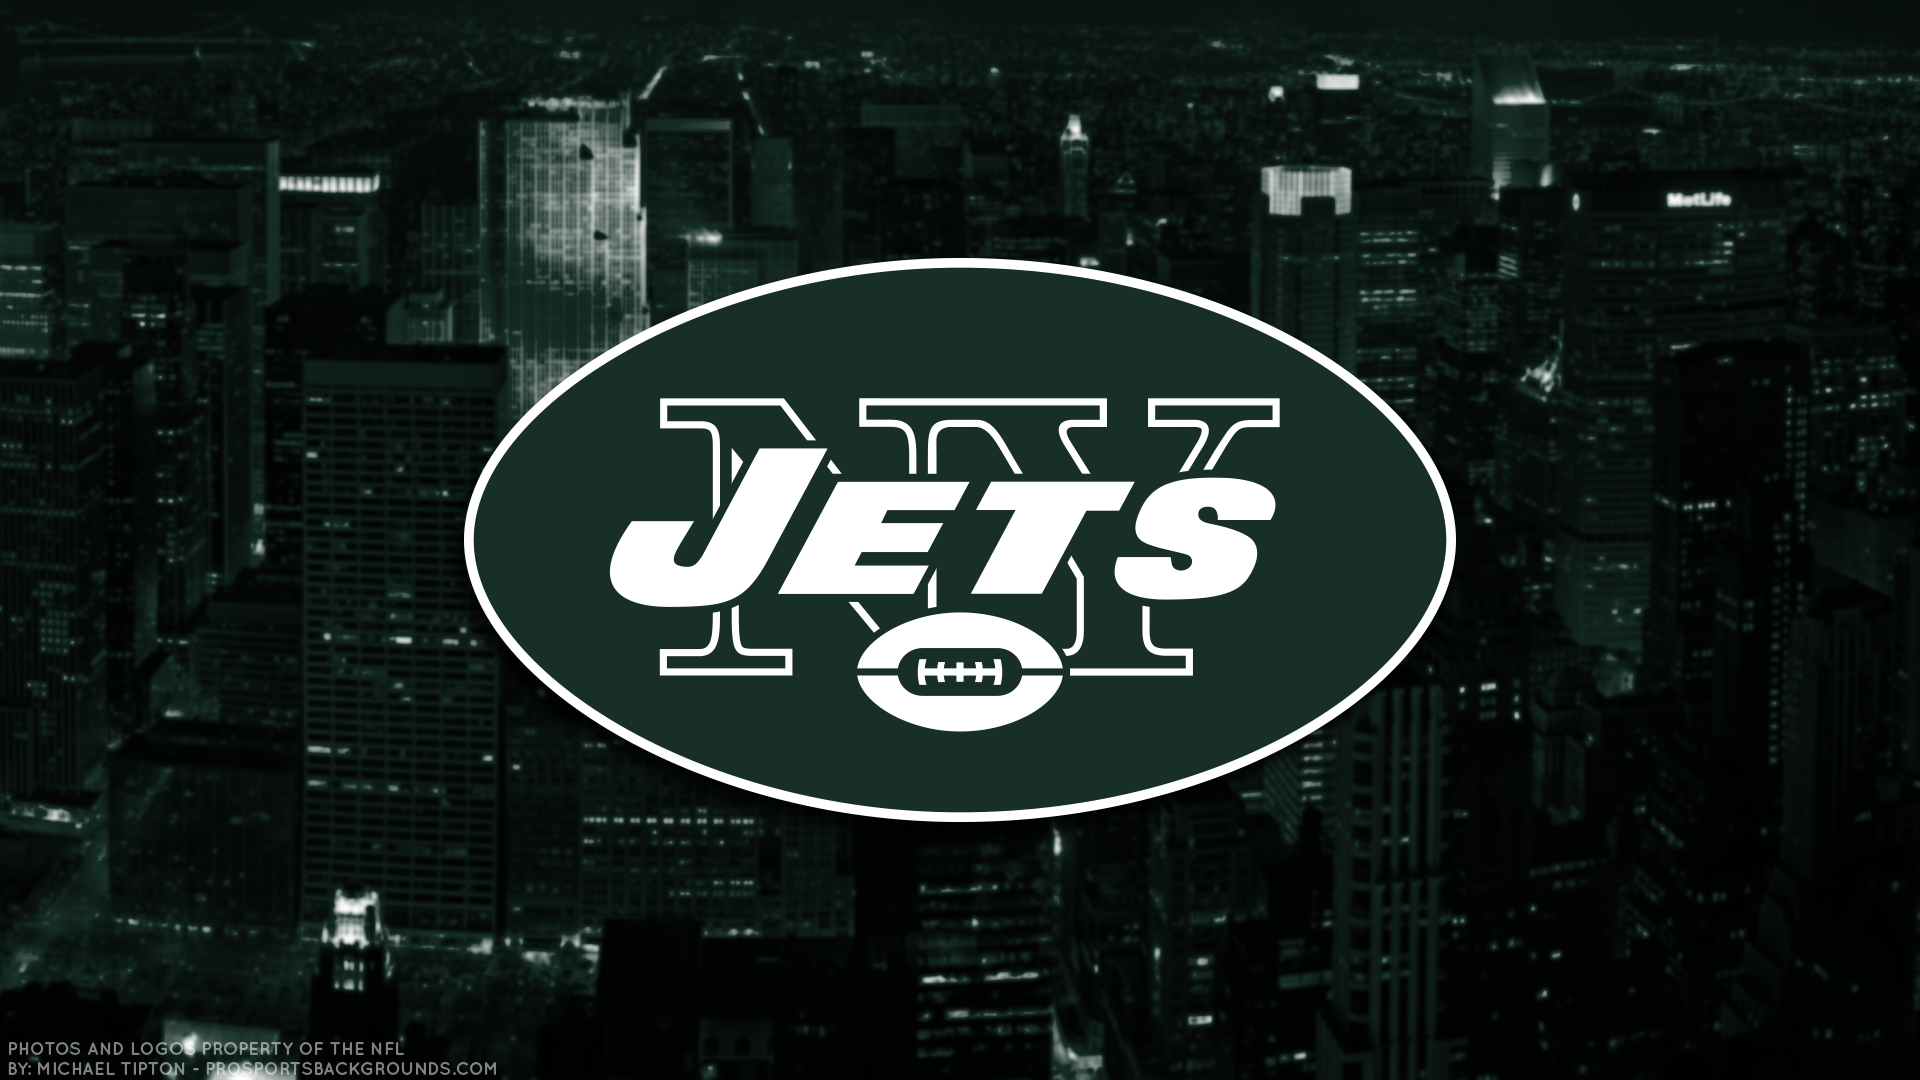 2018 new york jets wallpapers - pc |iphone| android